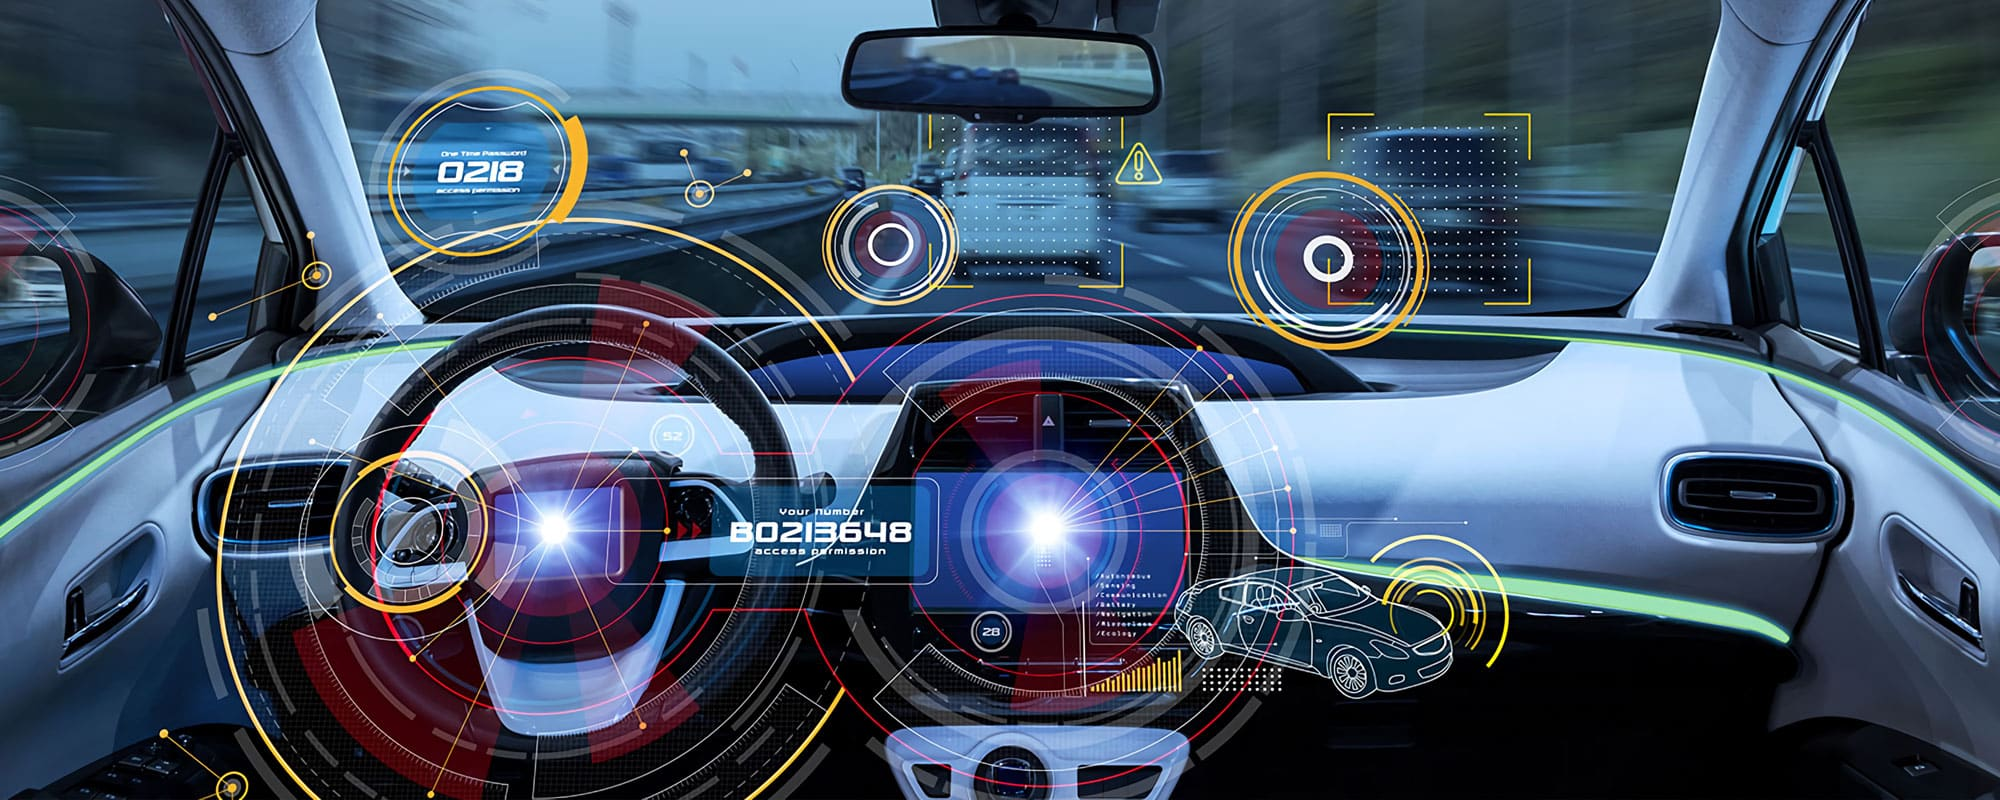 MICROSOFT'S CONNECTED VEHICLE PLATFORM PRESENCE AT IAA, THE ...